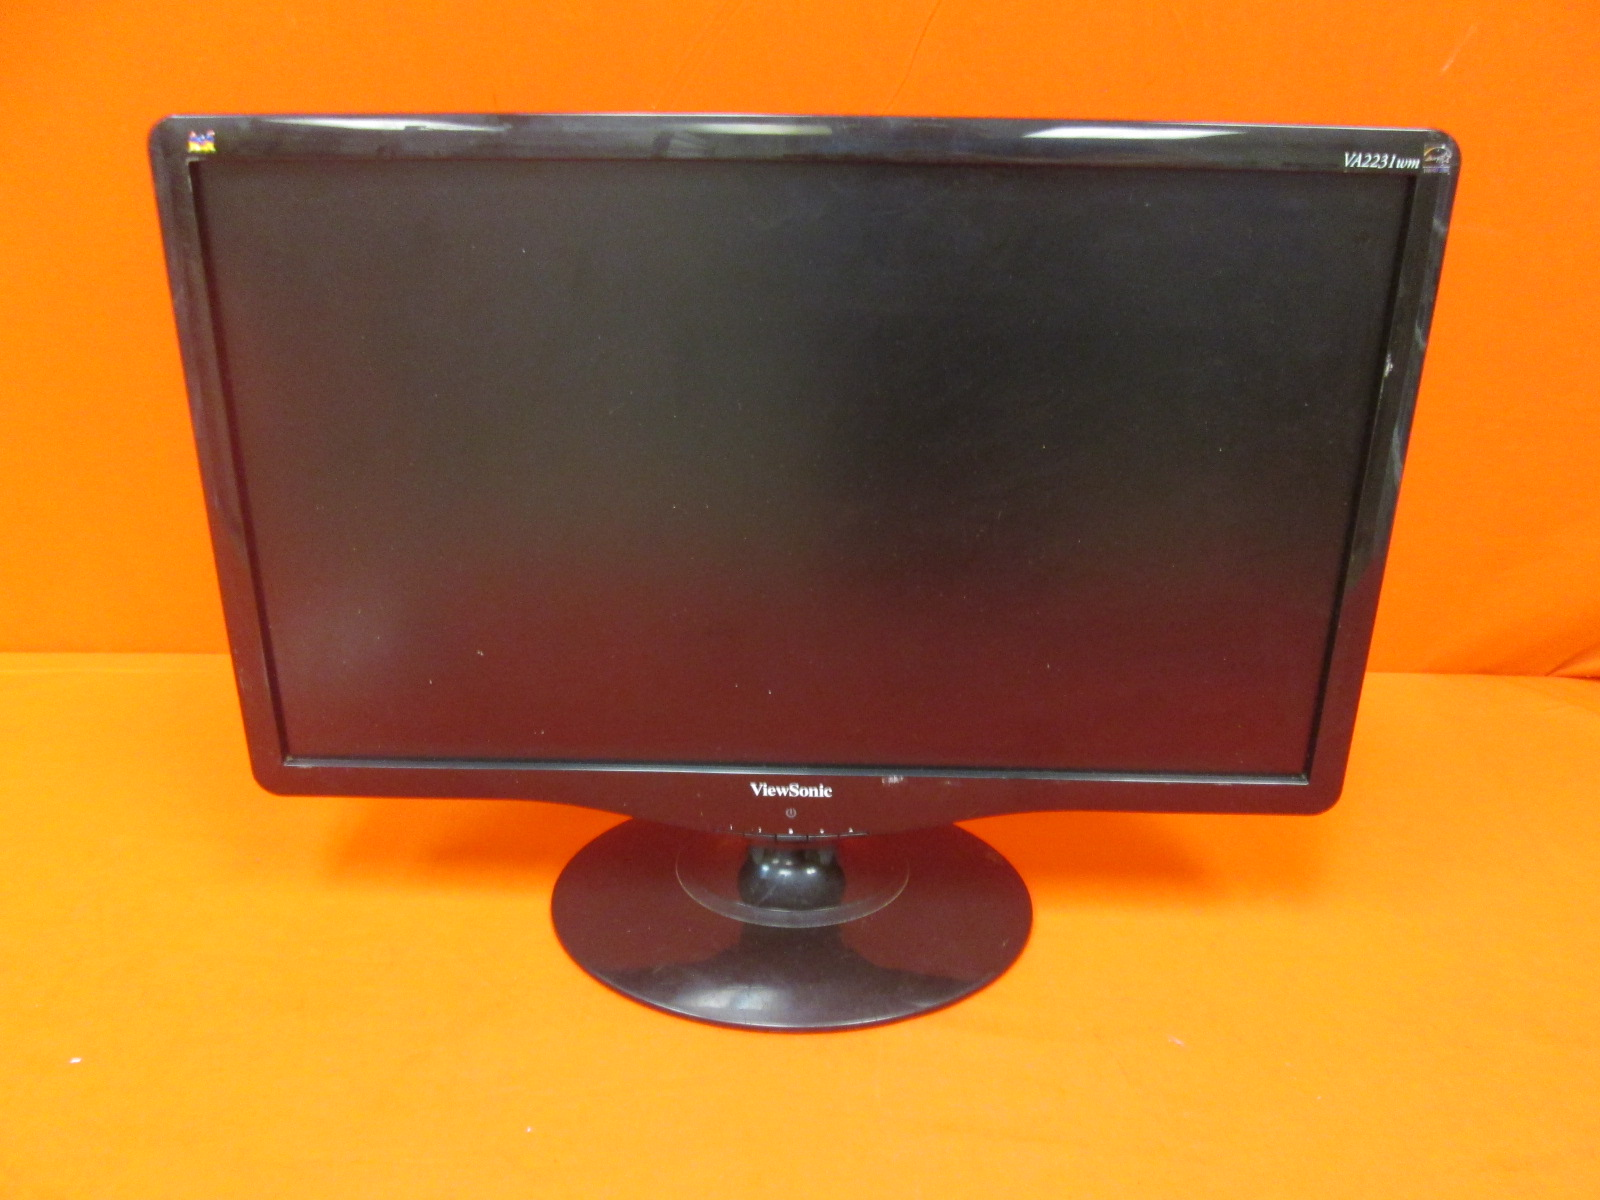 Viewsonic VA2231WM-LED 22-inch Widescreen LED LCD Monitor